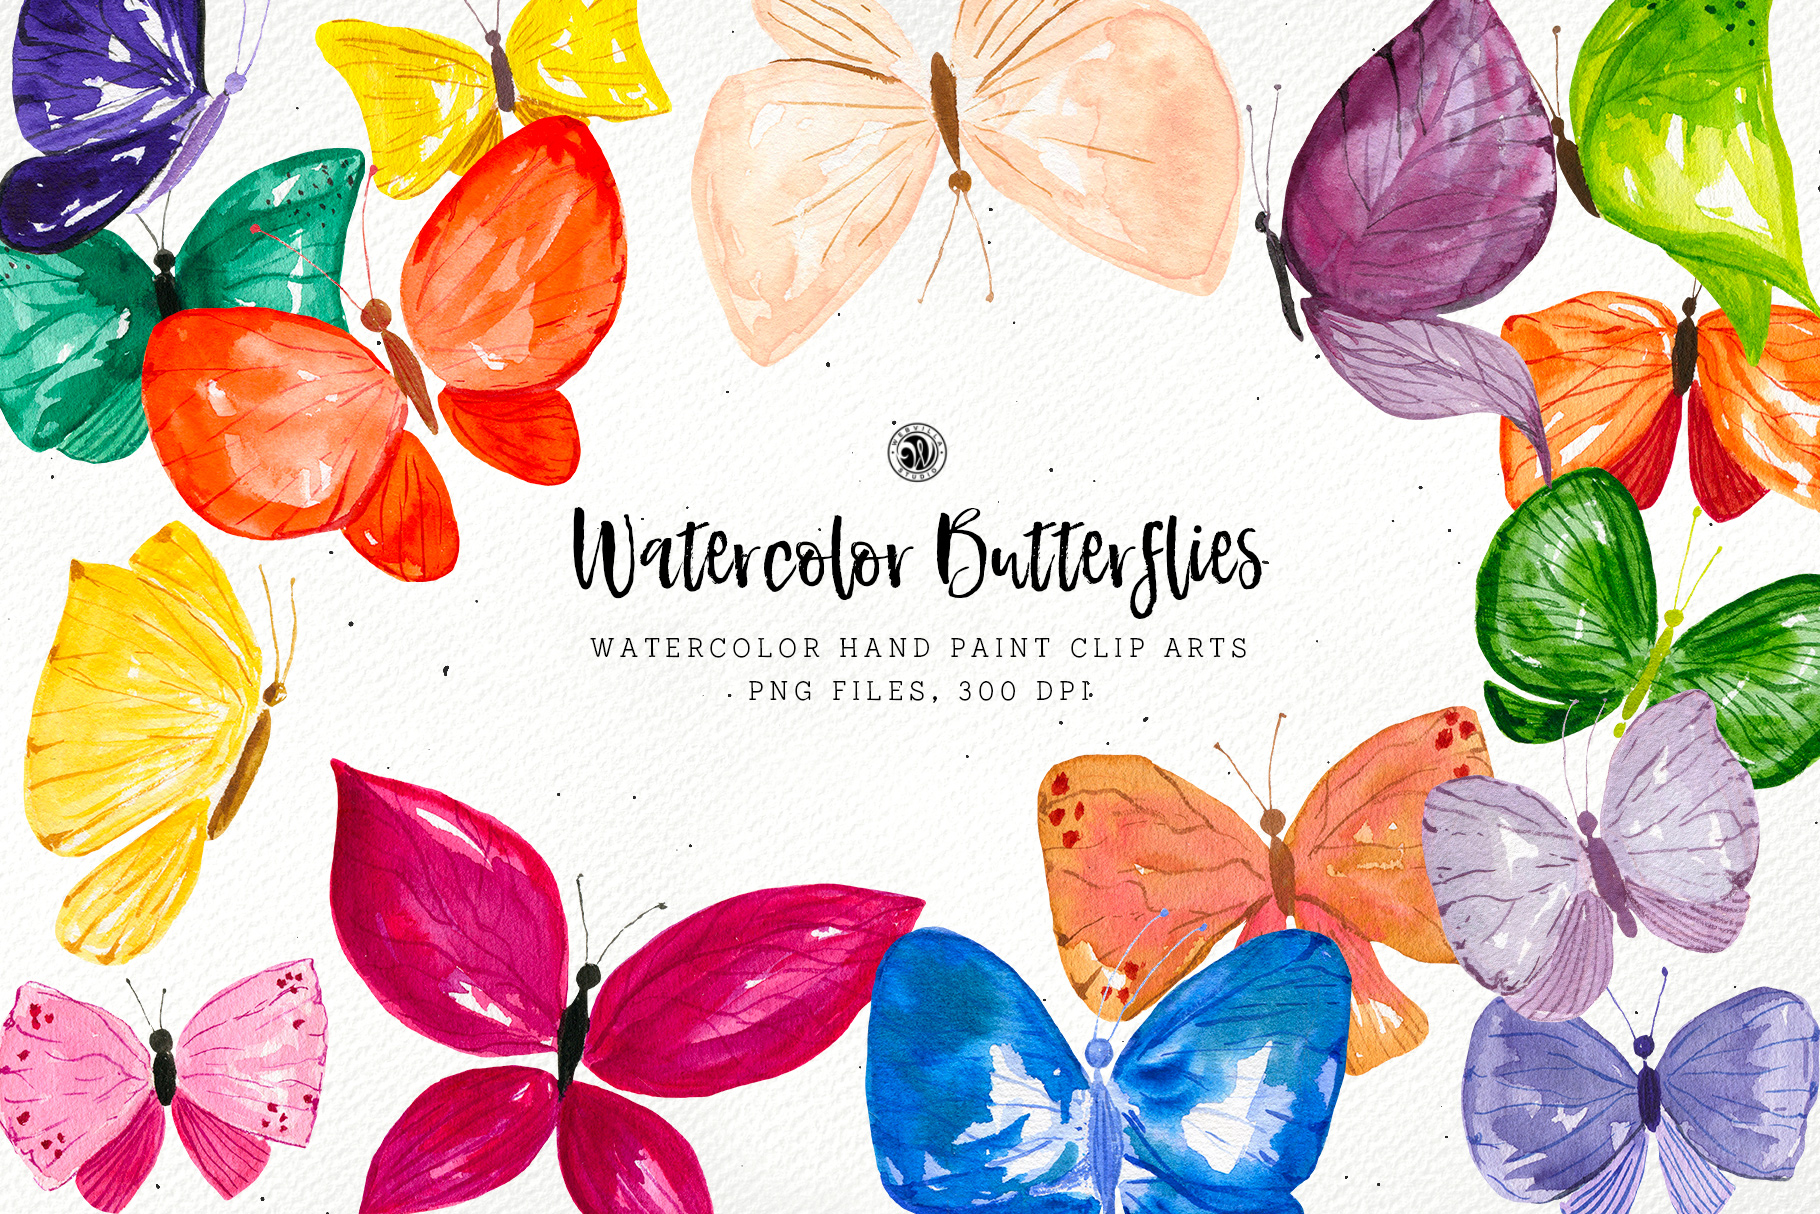 Watercolor Butterflies - Price $9